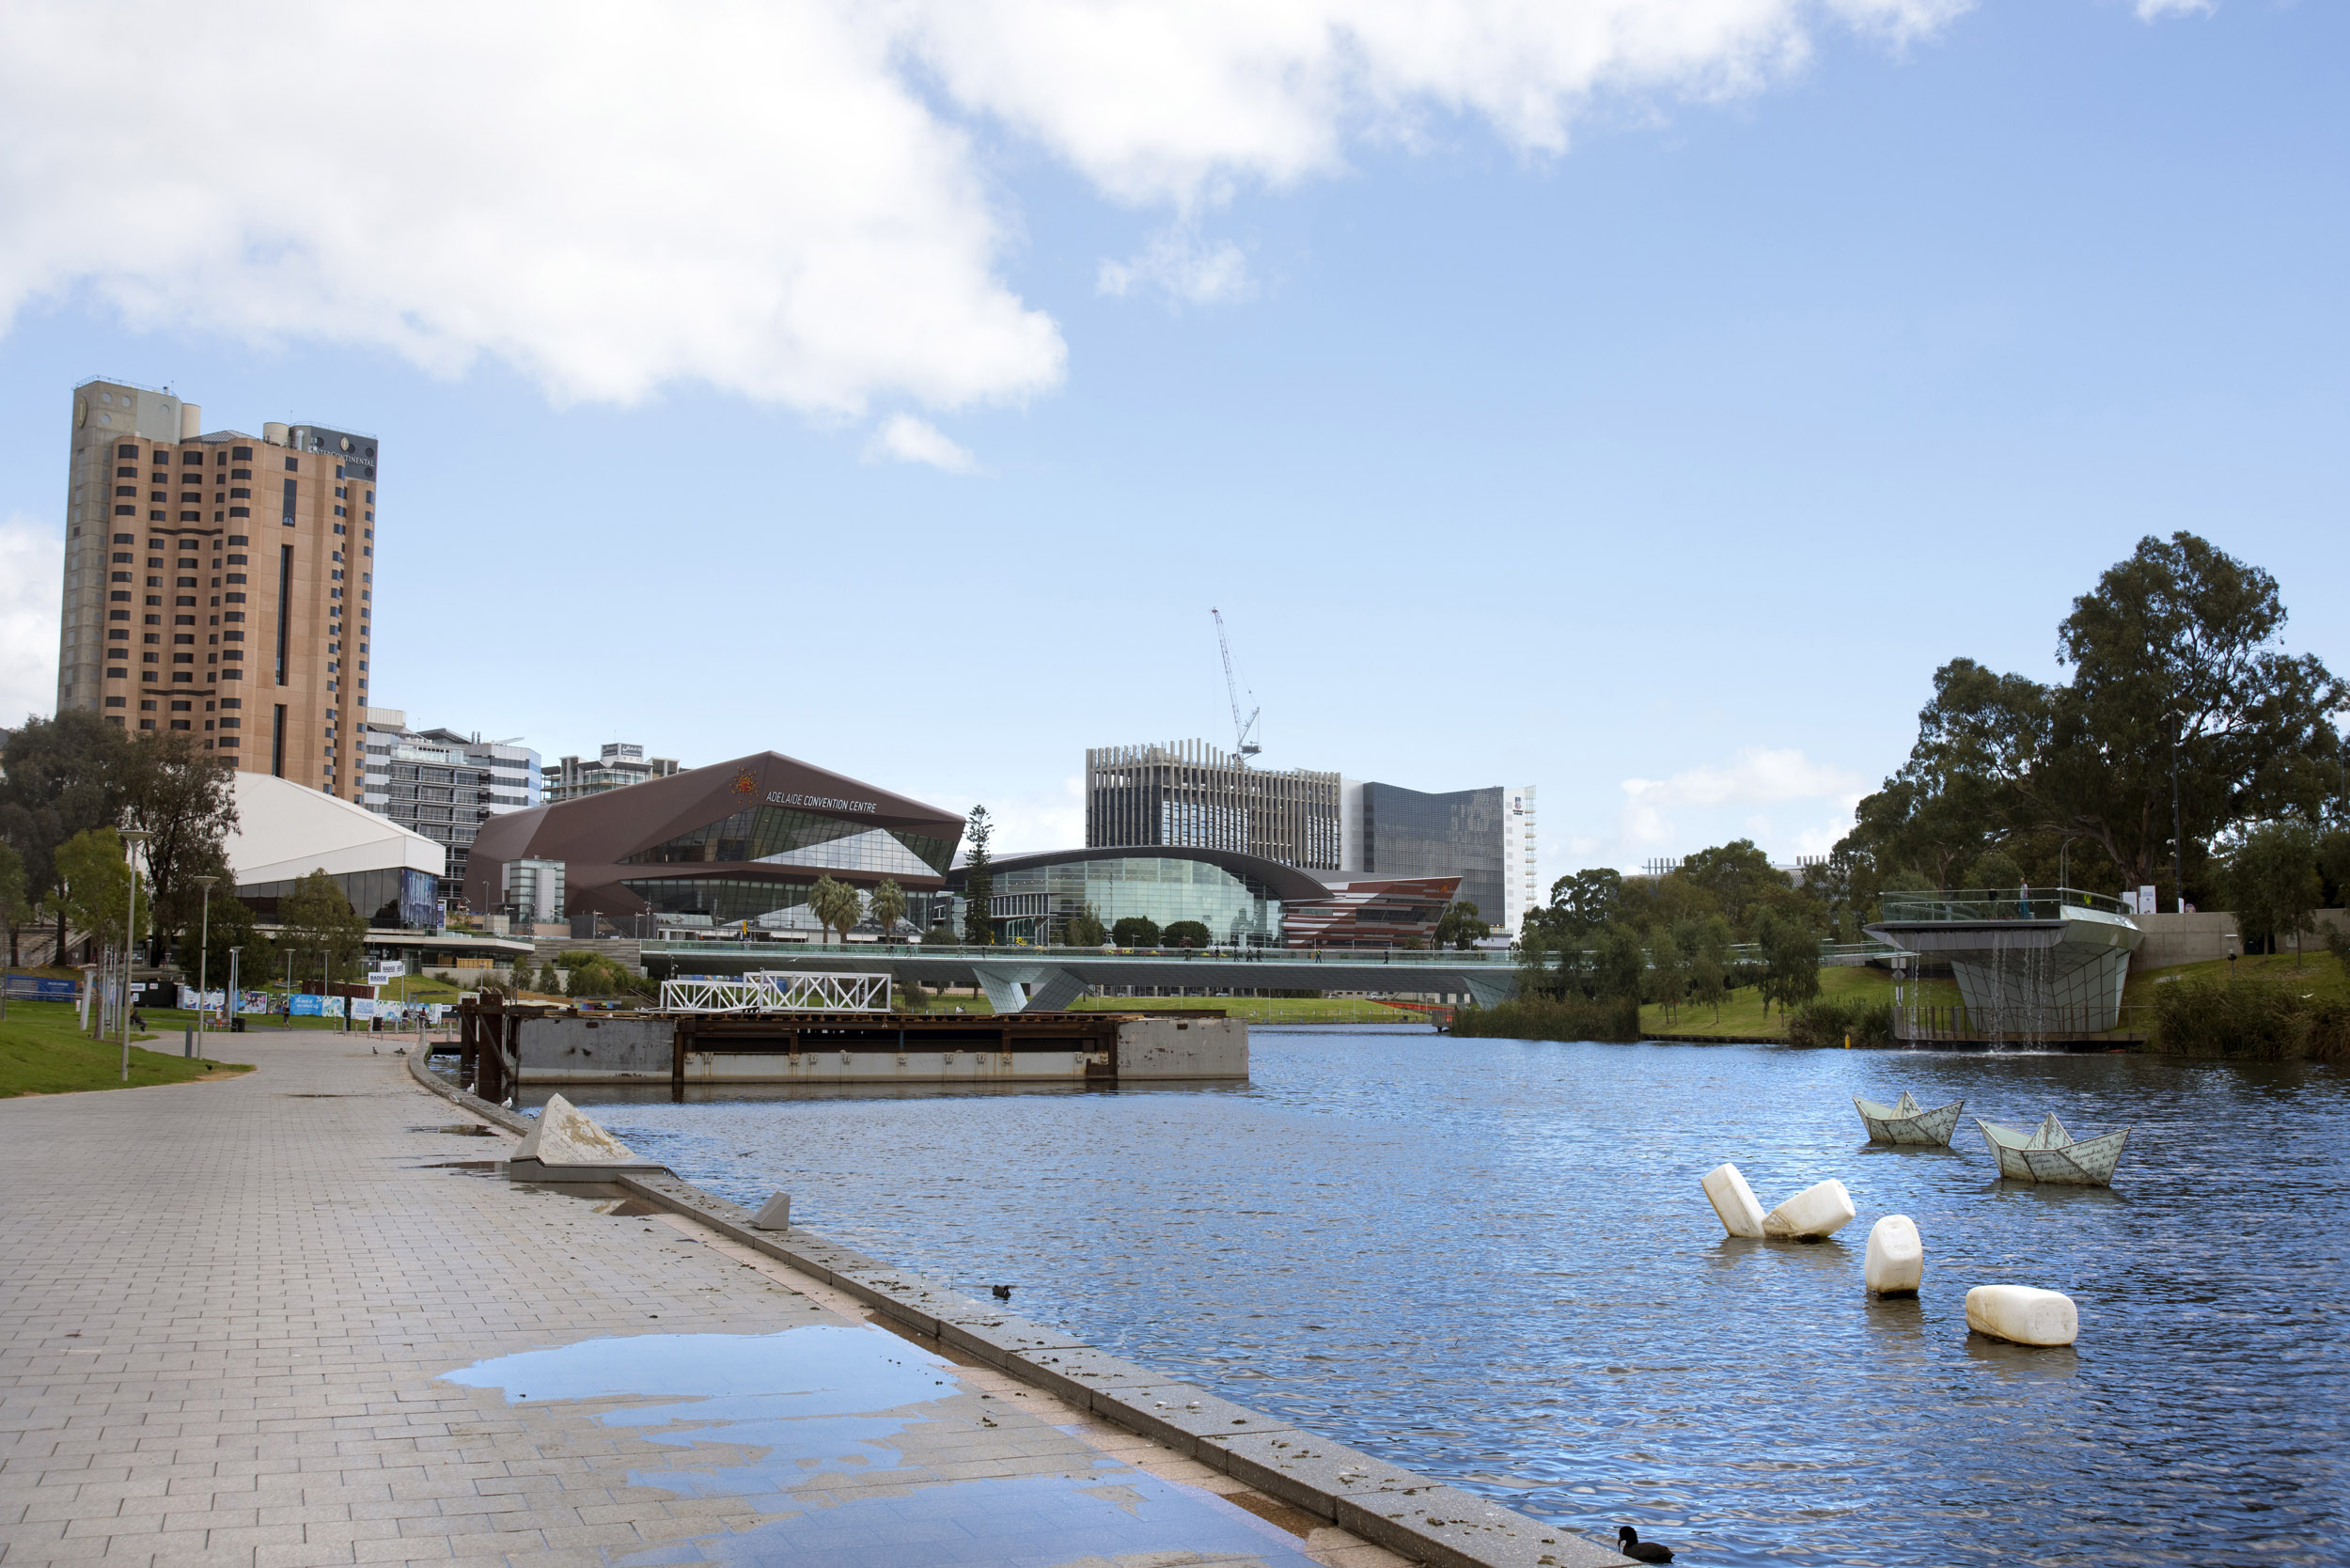 River in the city of Adelaide with high rise buildings in background, Australia.